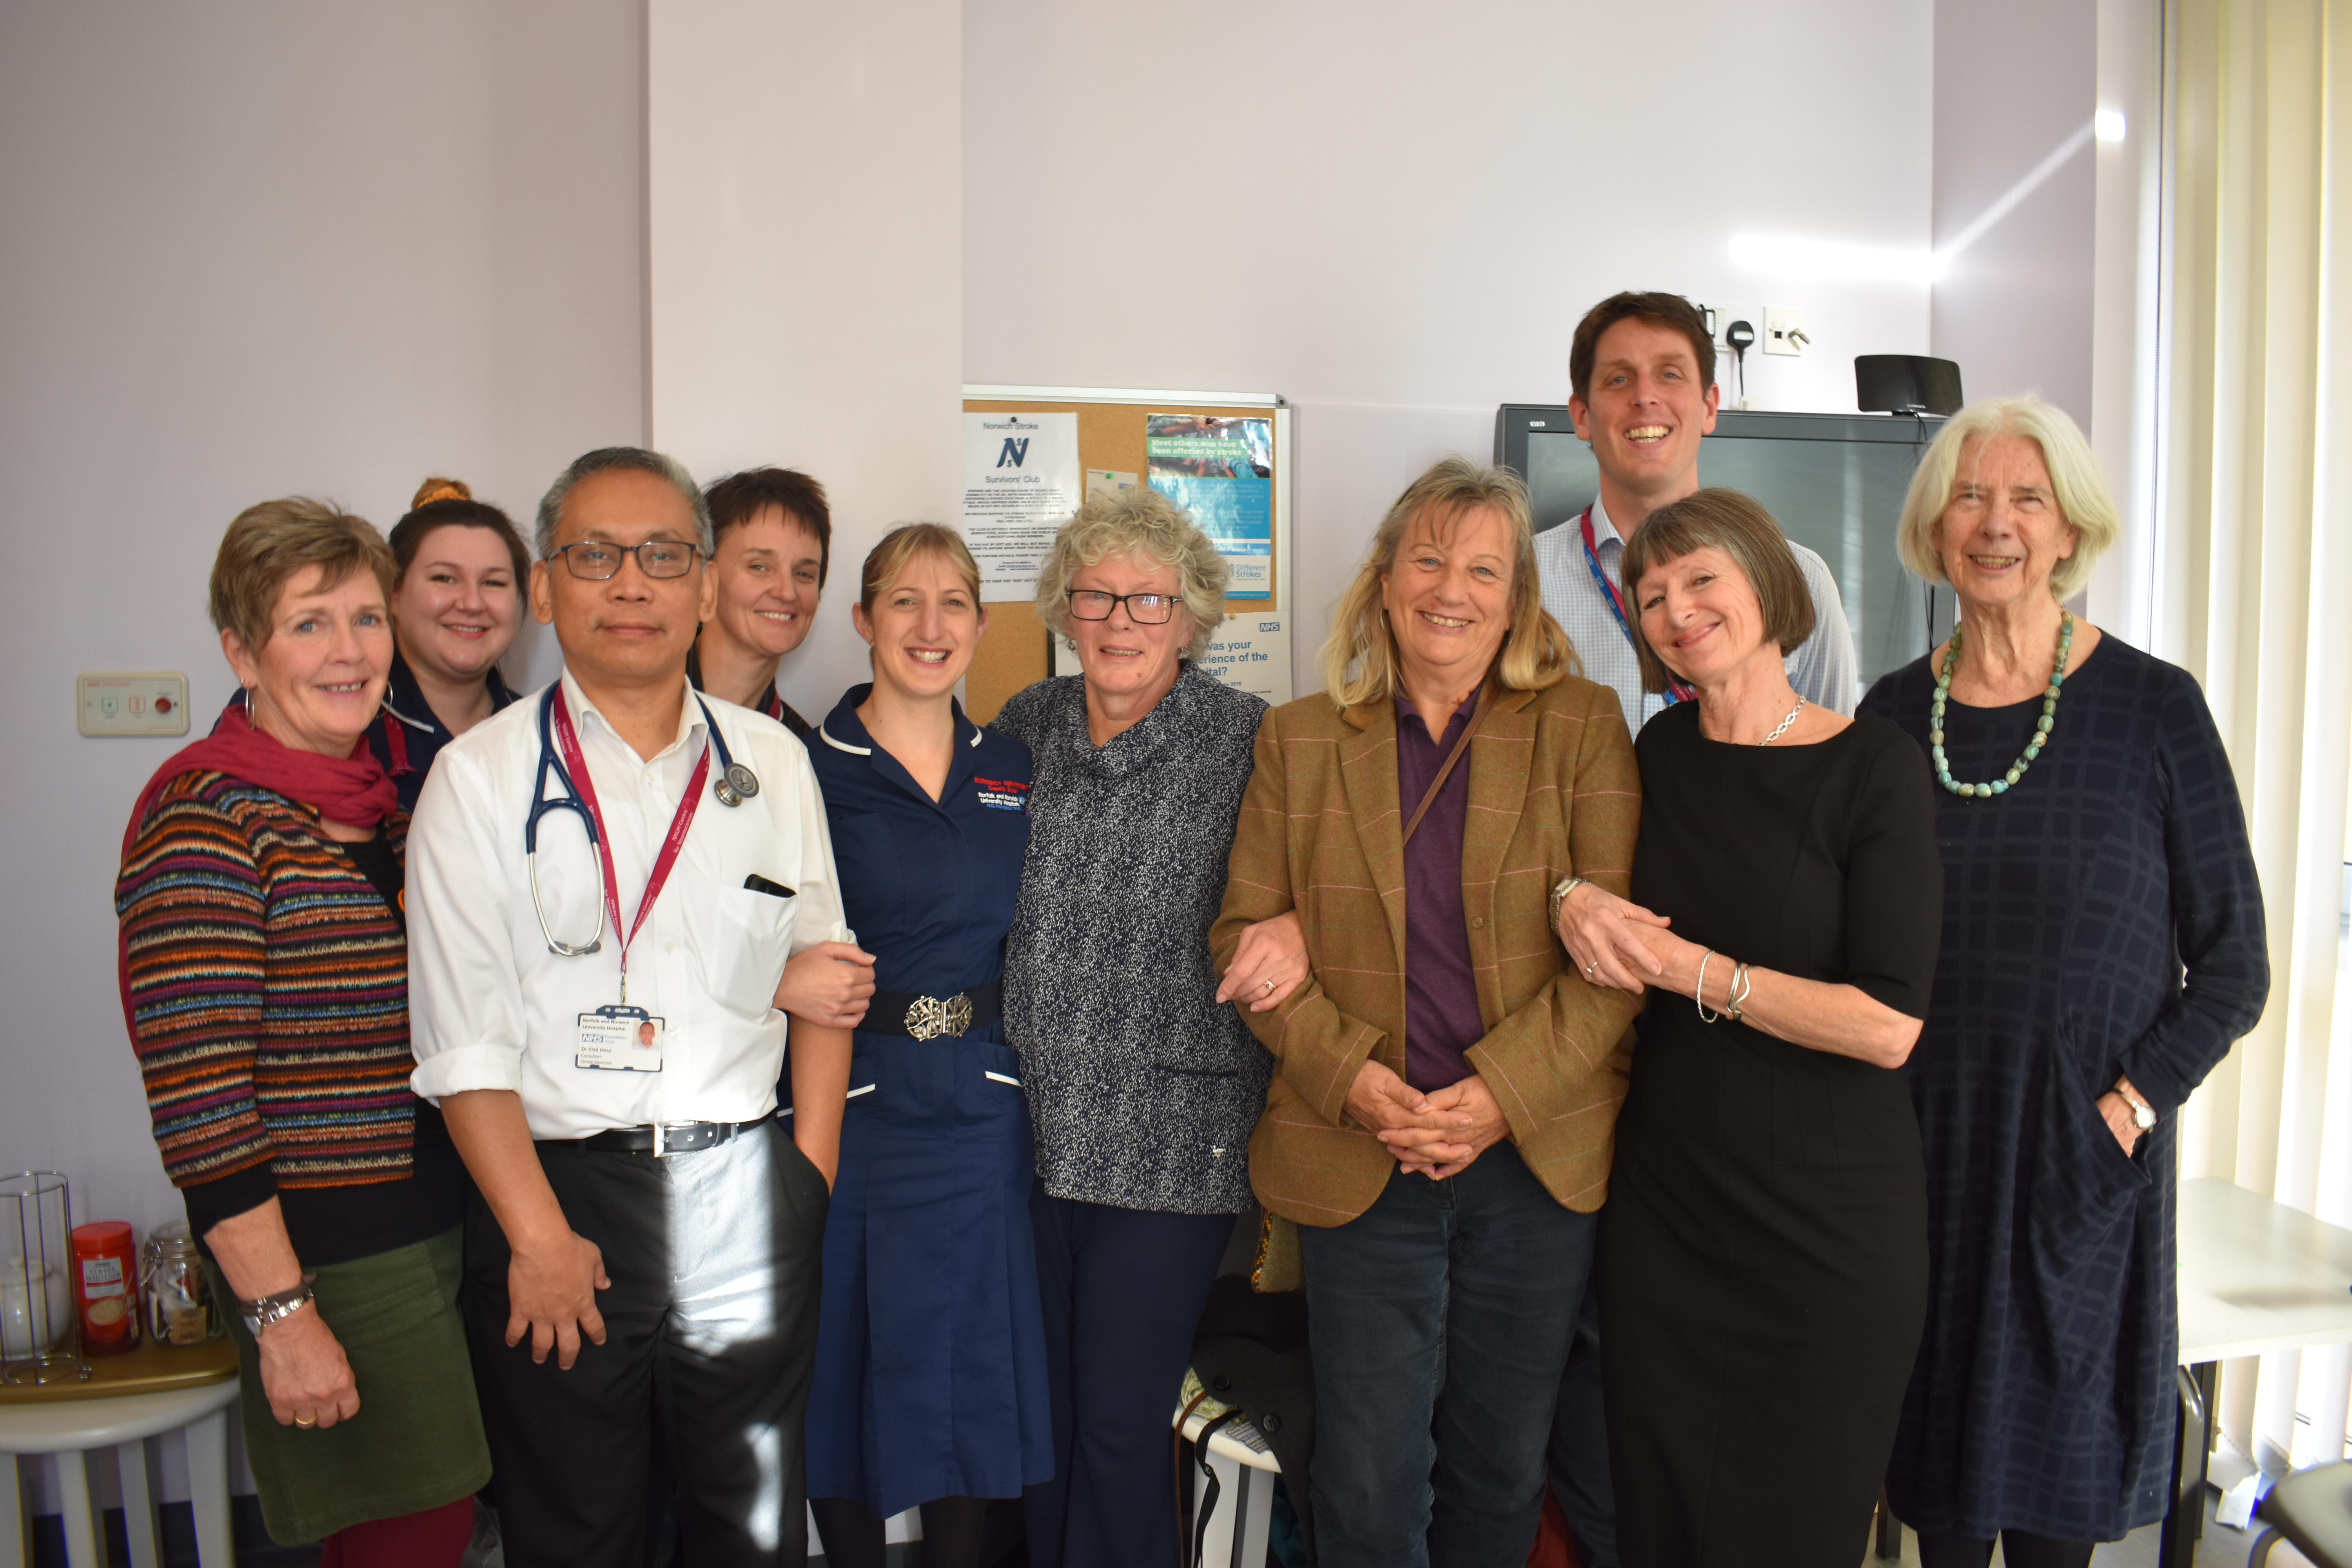 Boost for stroke team from book proceeds